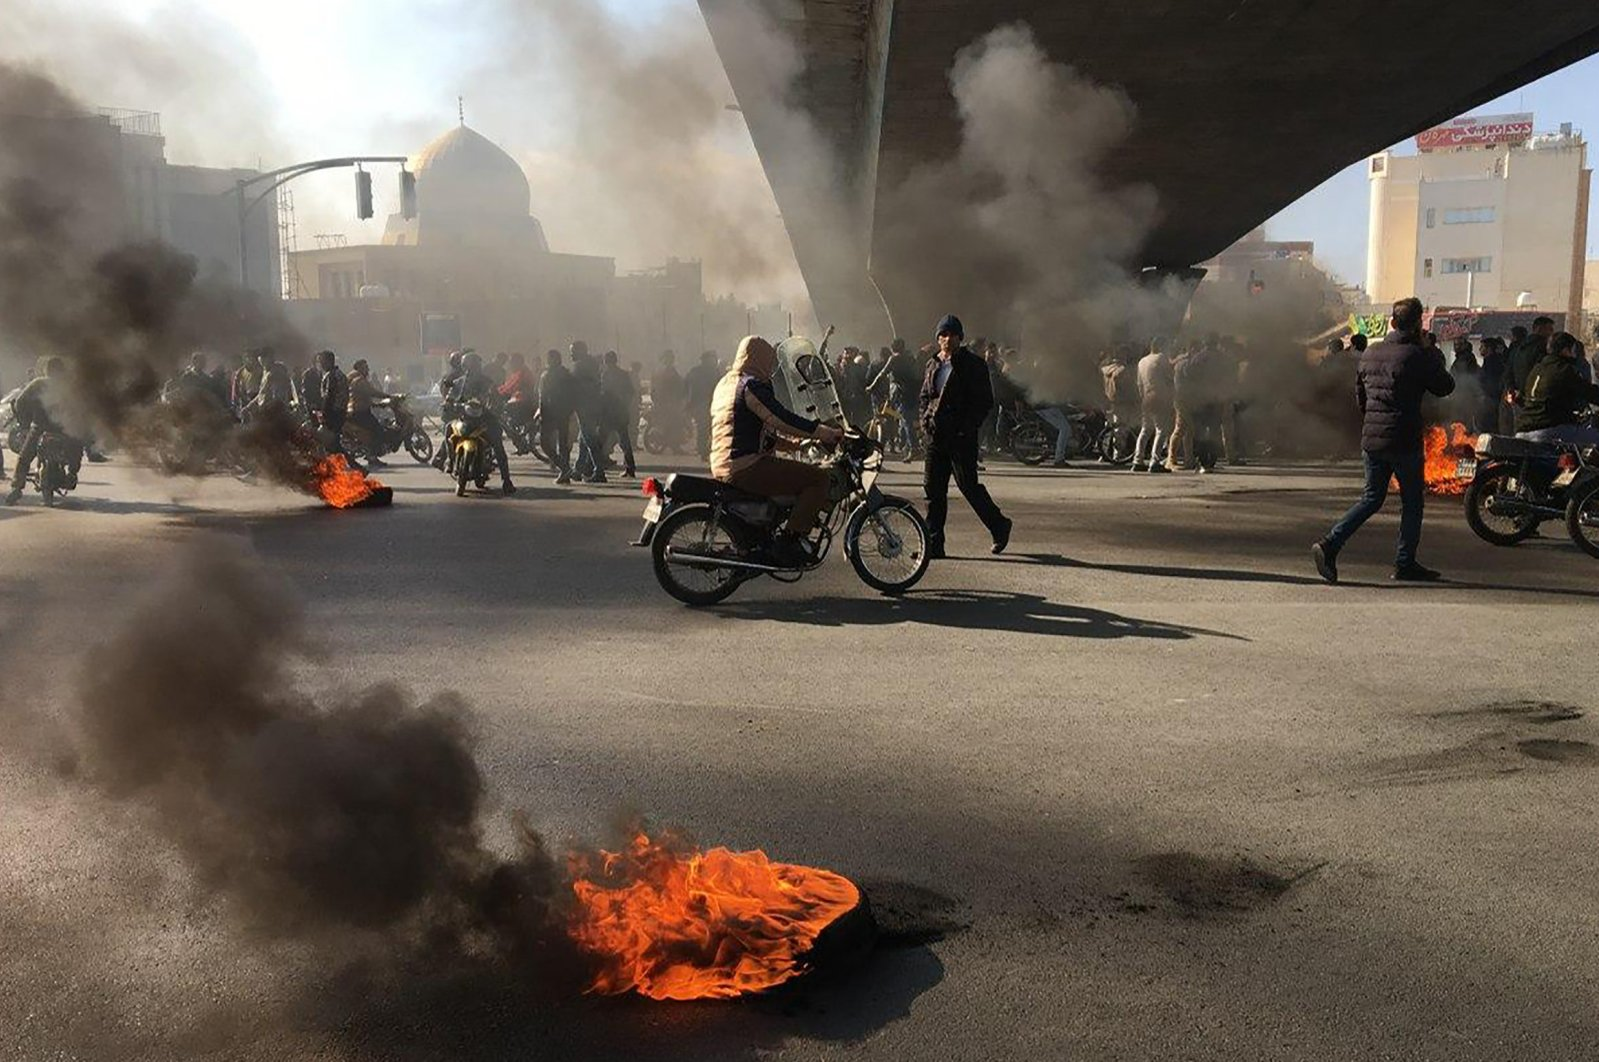 Iranian protesters rally amid burning tires during a demonstration against an increase in gasoline prices, Isfahan, Iran, Nov. 16, 2019. (AFP Photo)